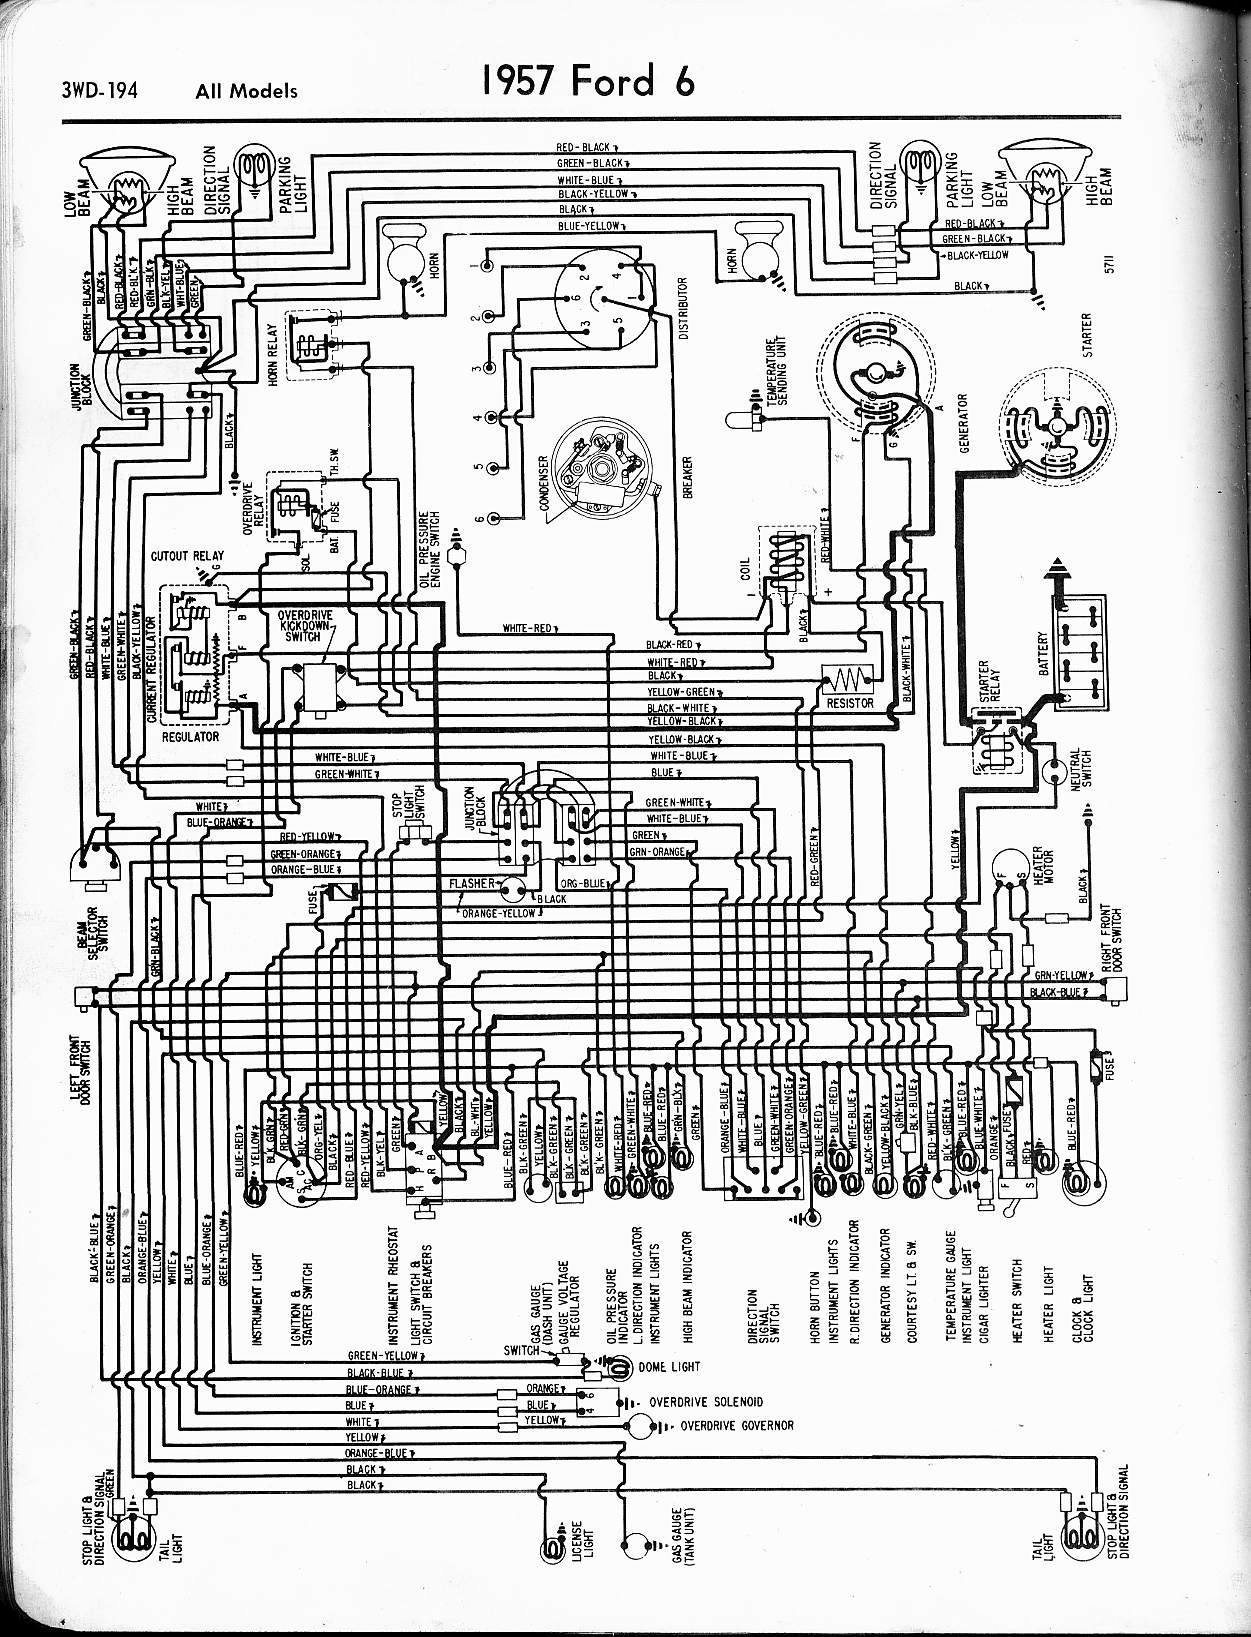 ford diagrams 1959 Ford F100 Ignition Wiring Diagram 57_ford_wiring drawing a 1959 ford f100 wiring diagram